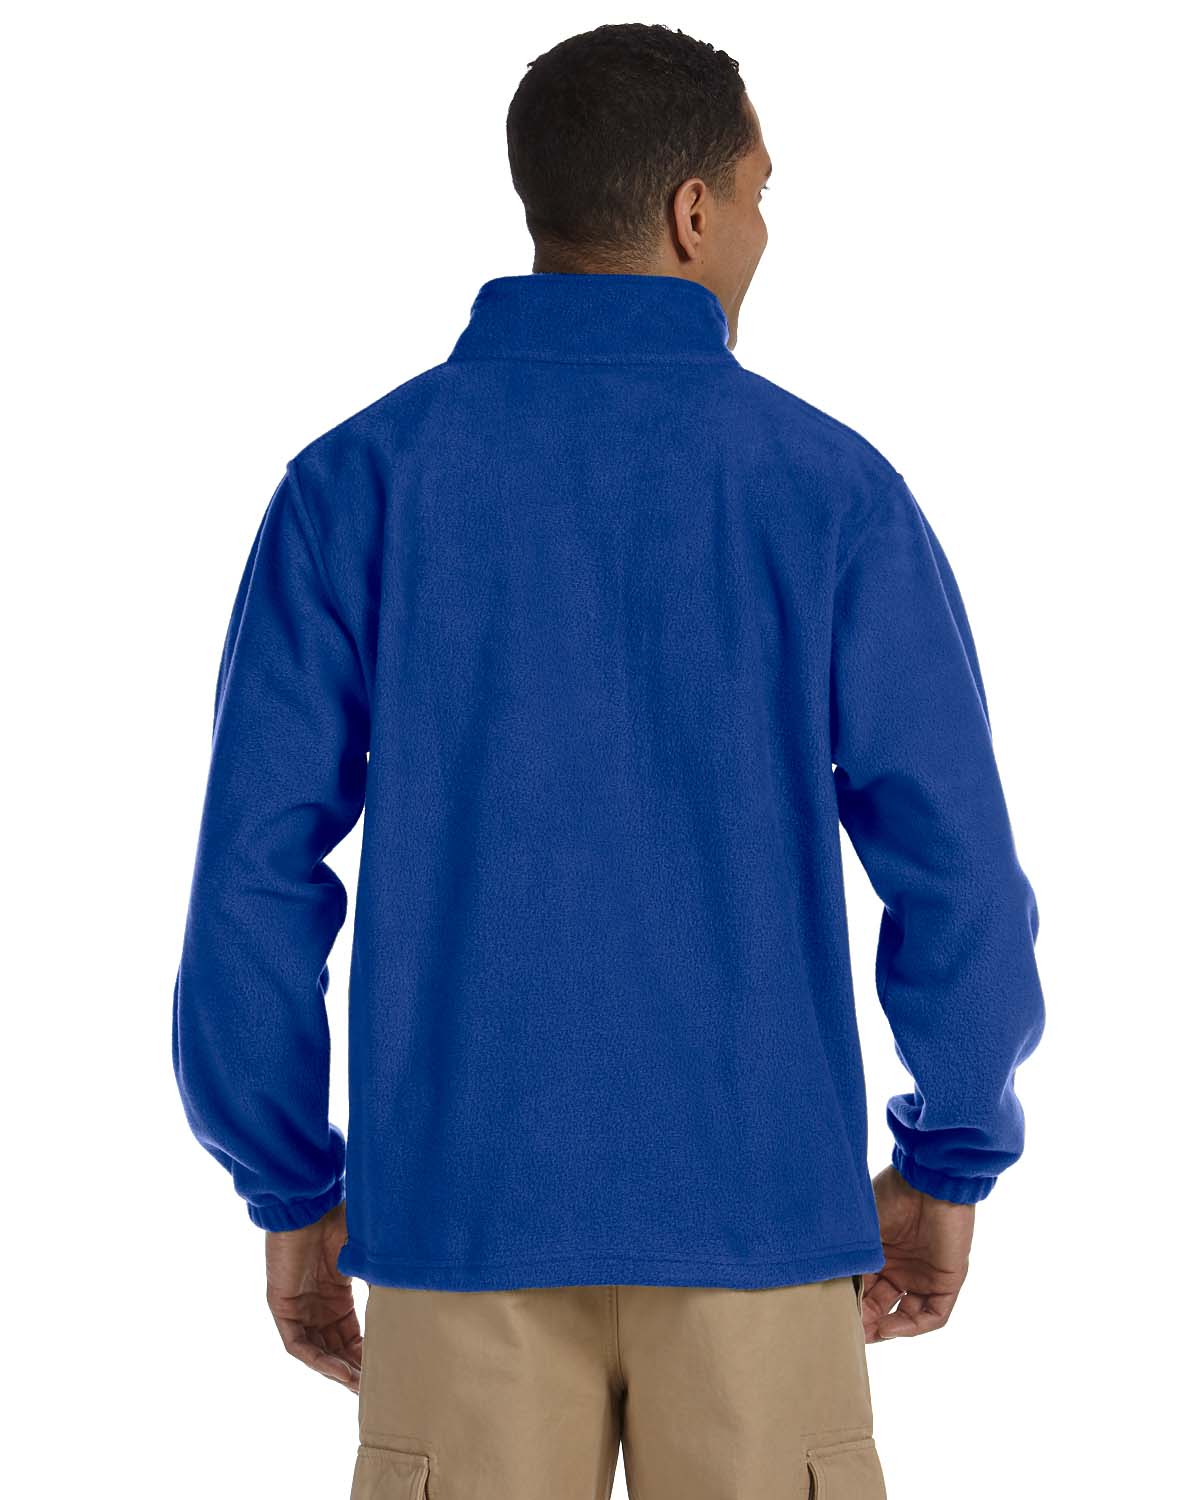 Harriton-Jacket-Men-039-s-8-oz-Full-Zip-Fleece-Solid-S-XL-R-M990 thumbnail 30